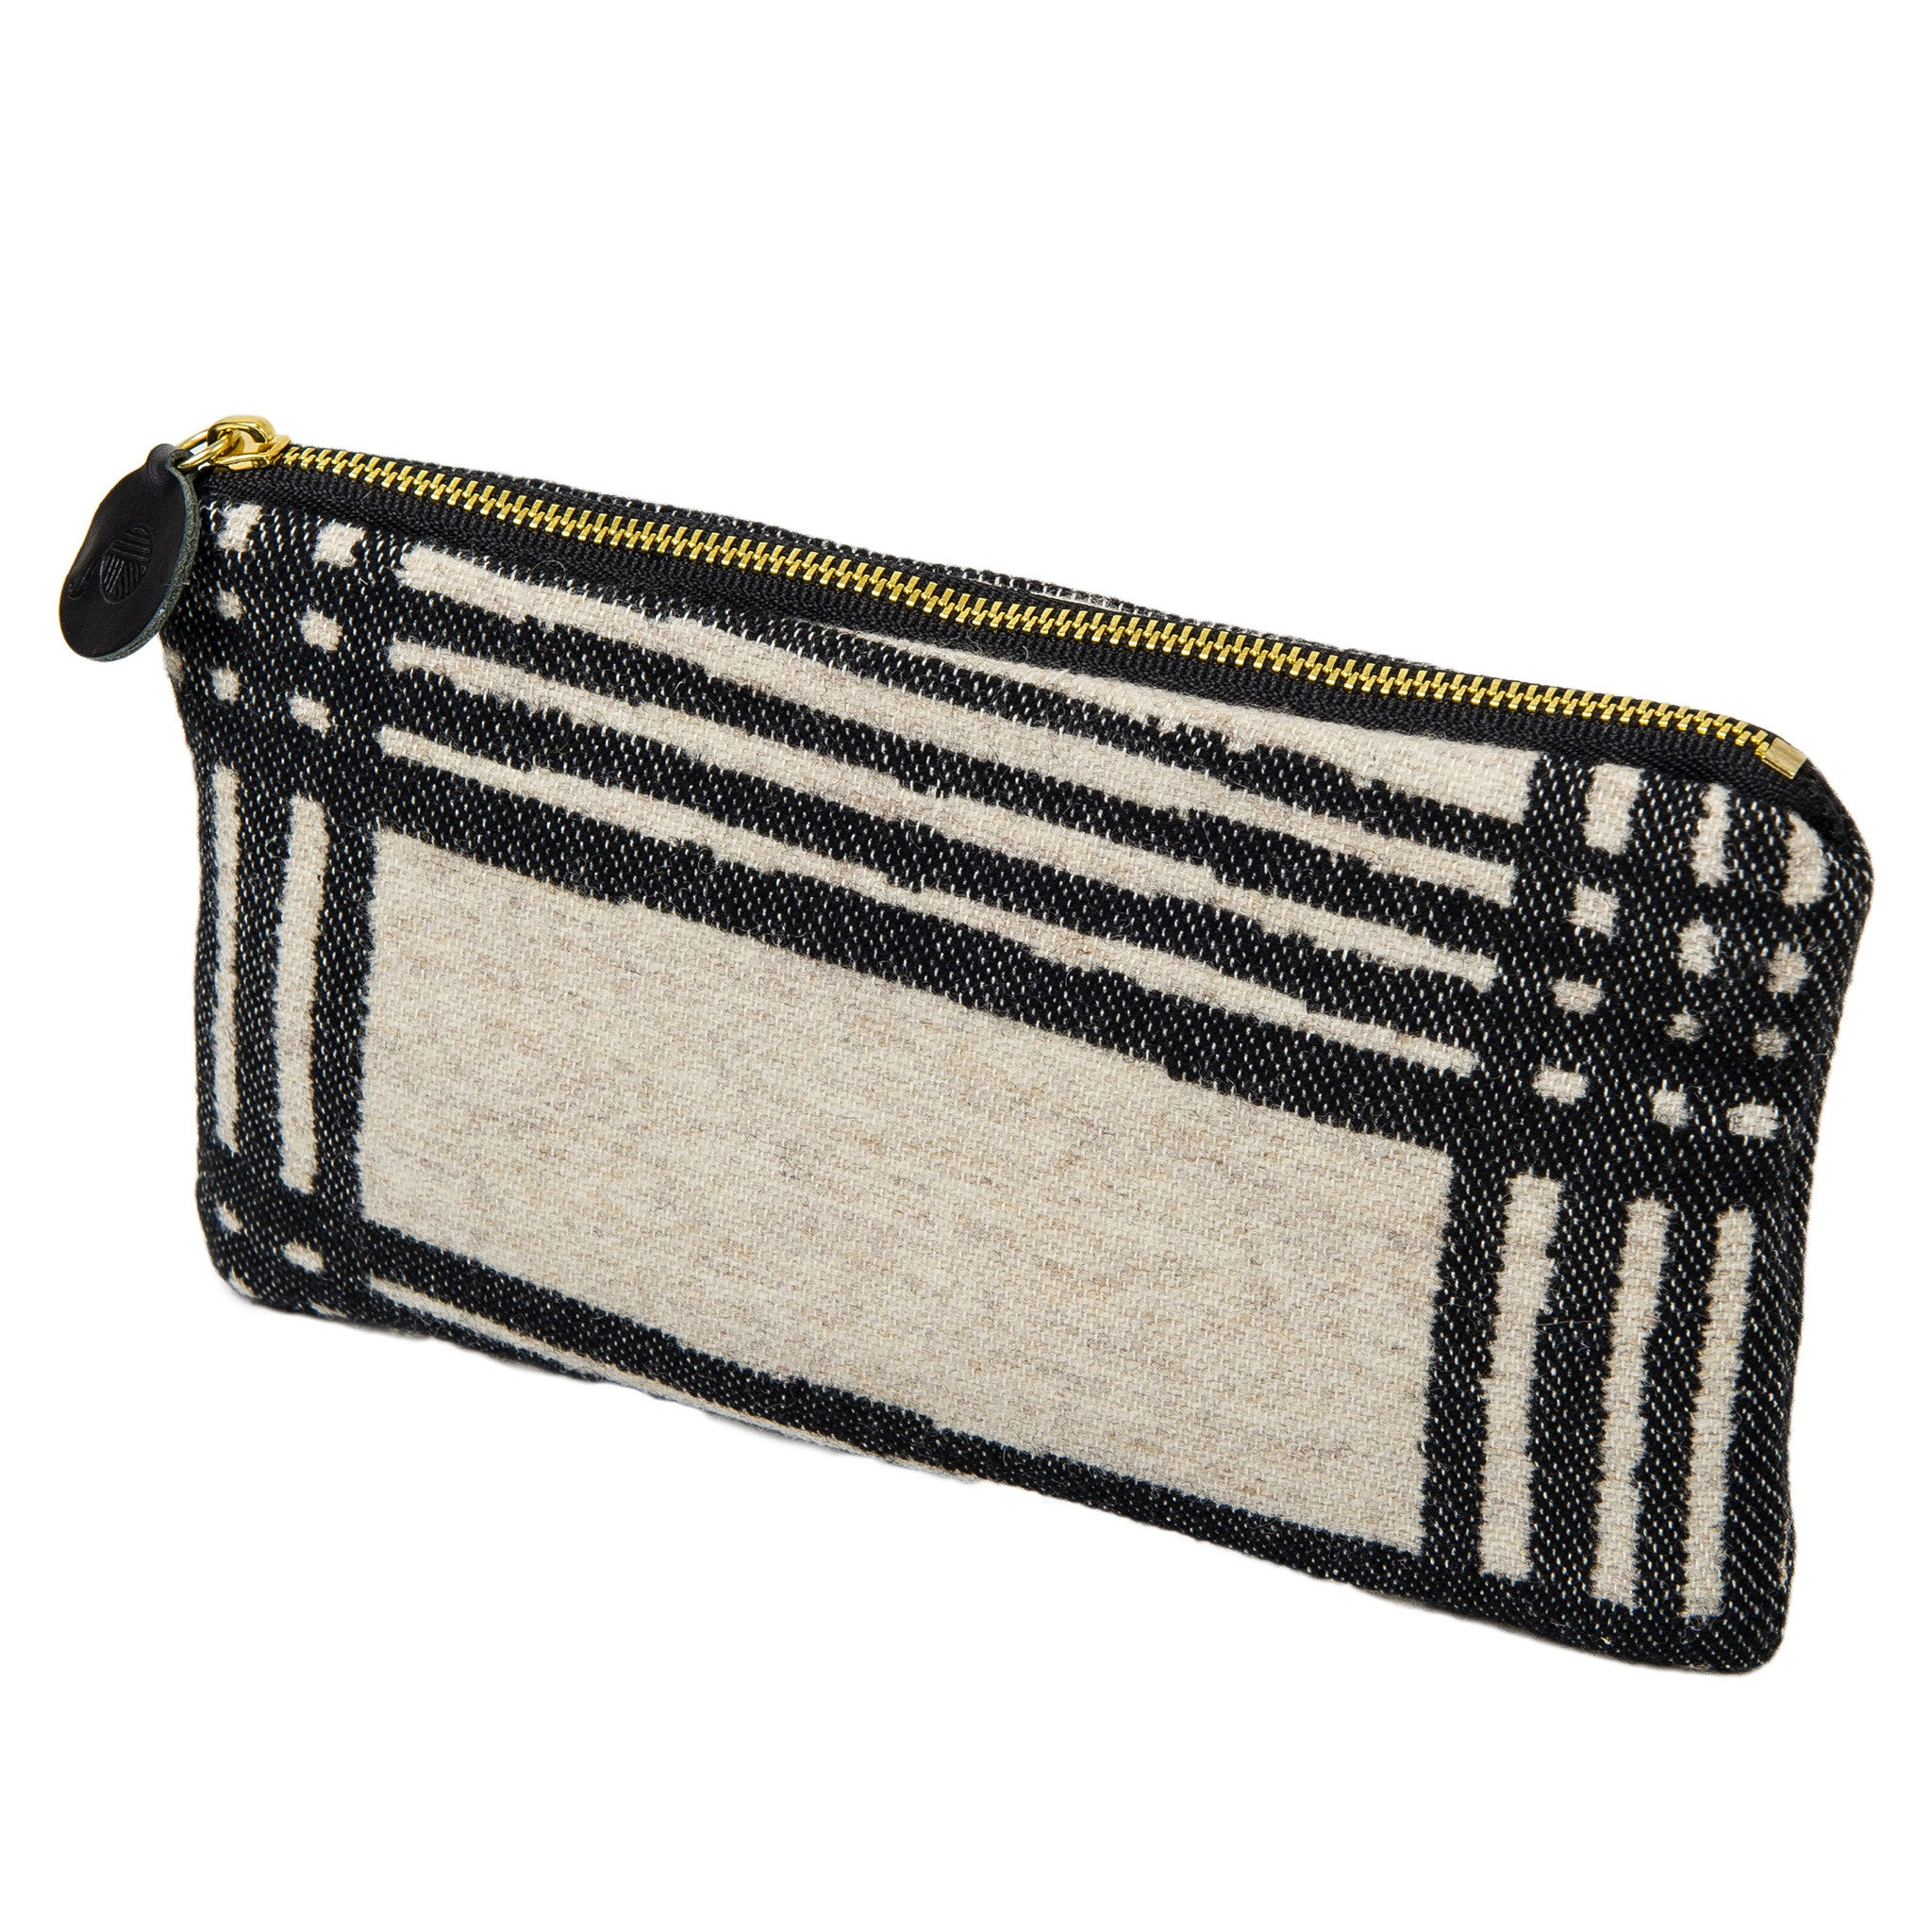 Merino Lambswool Zip Purse - Murphy Black on Linen - Tori Murphy